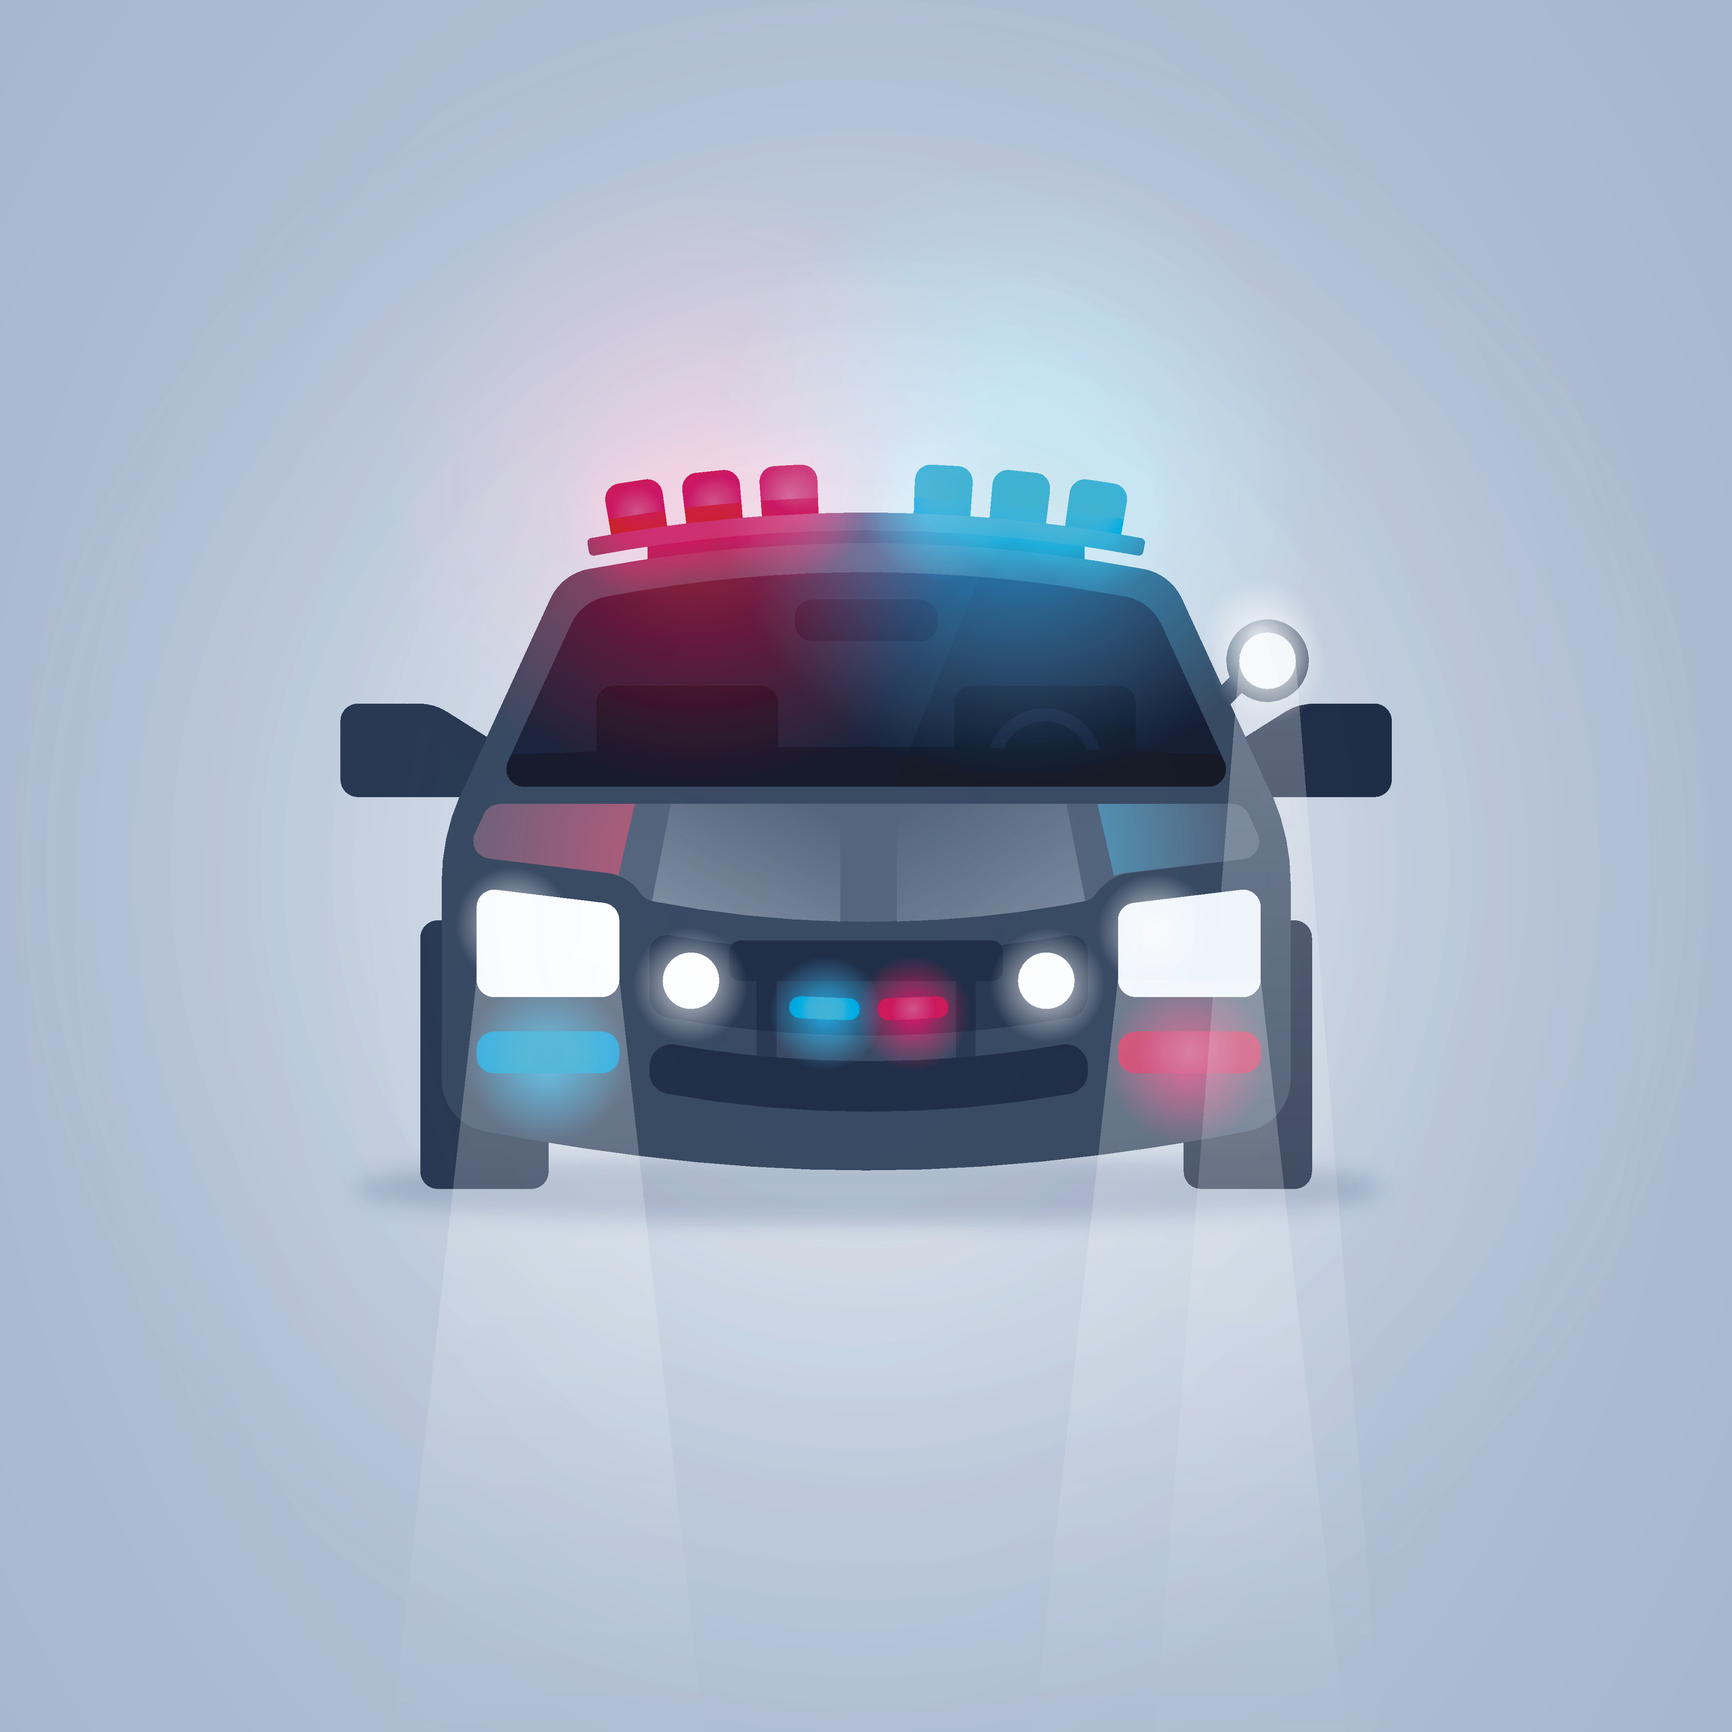 The Difference Between a DWI and a DUI? | The Simple Dollar